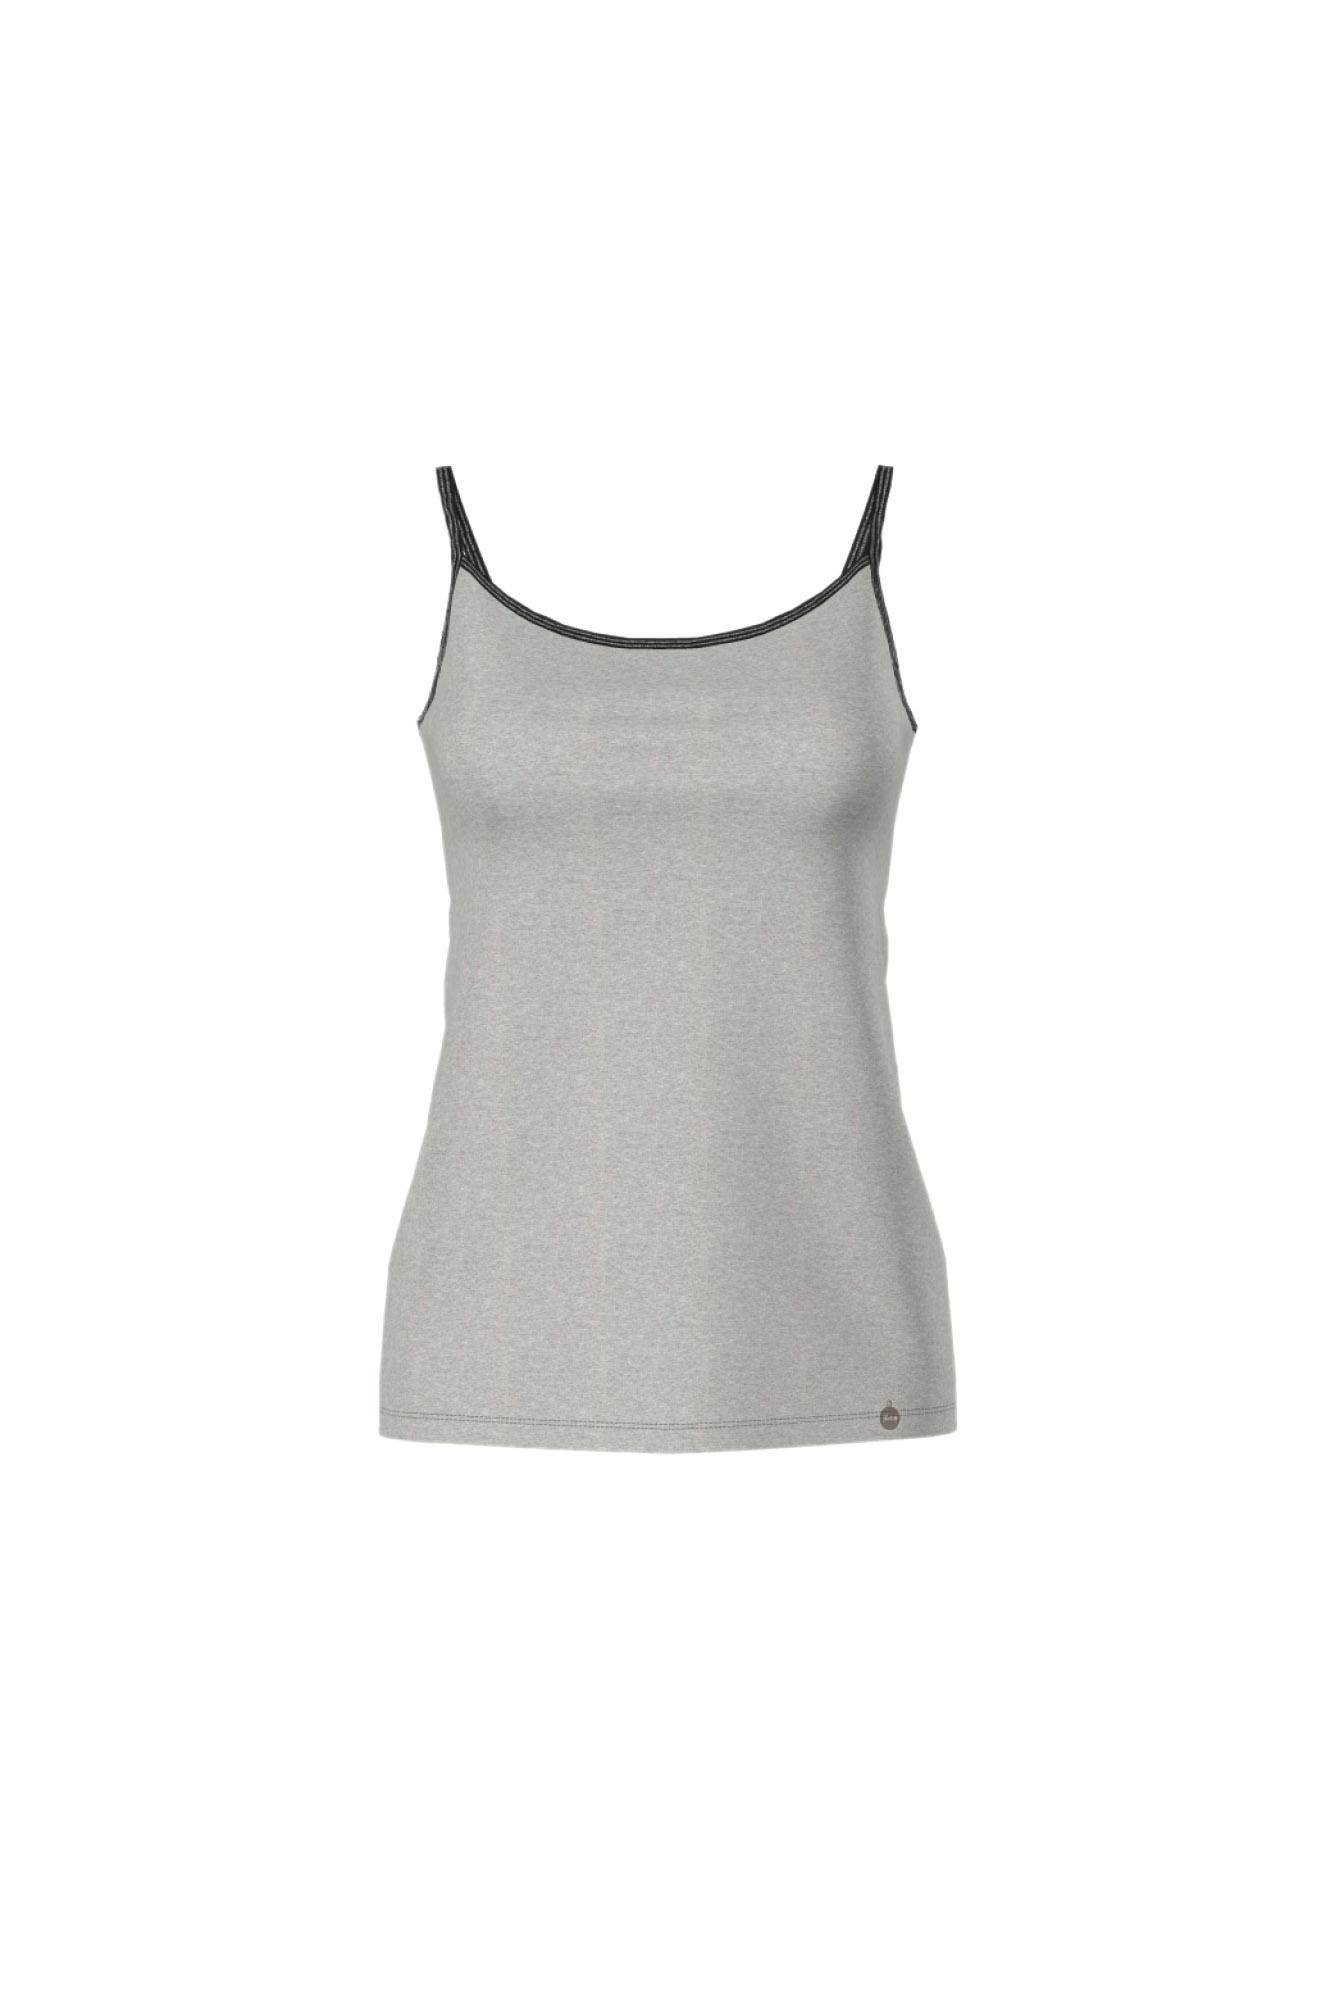 Women's Plain Vest with Spaghetti Straps